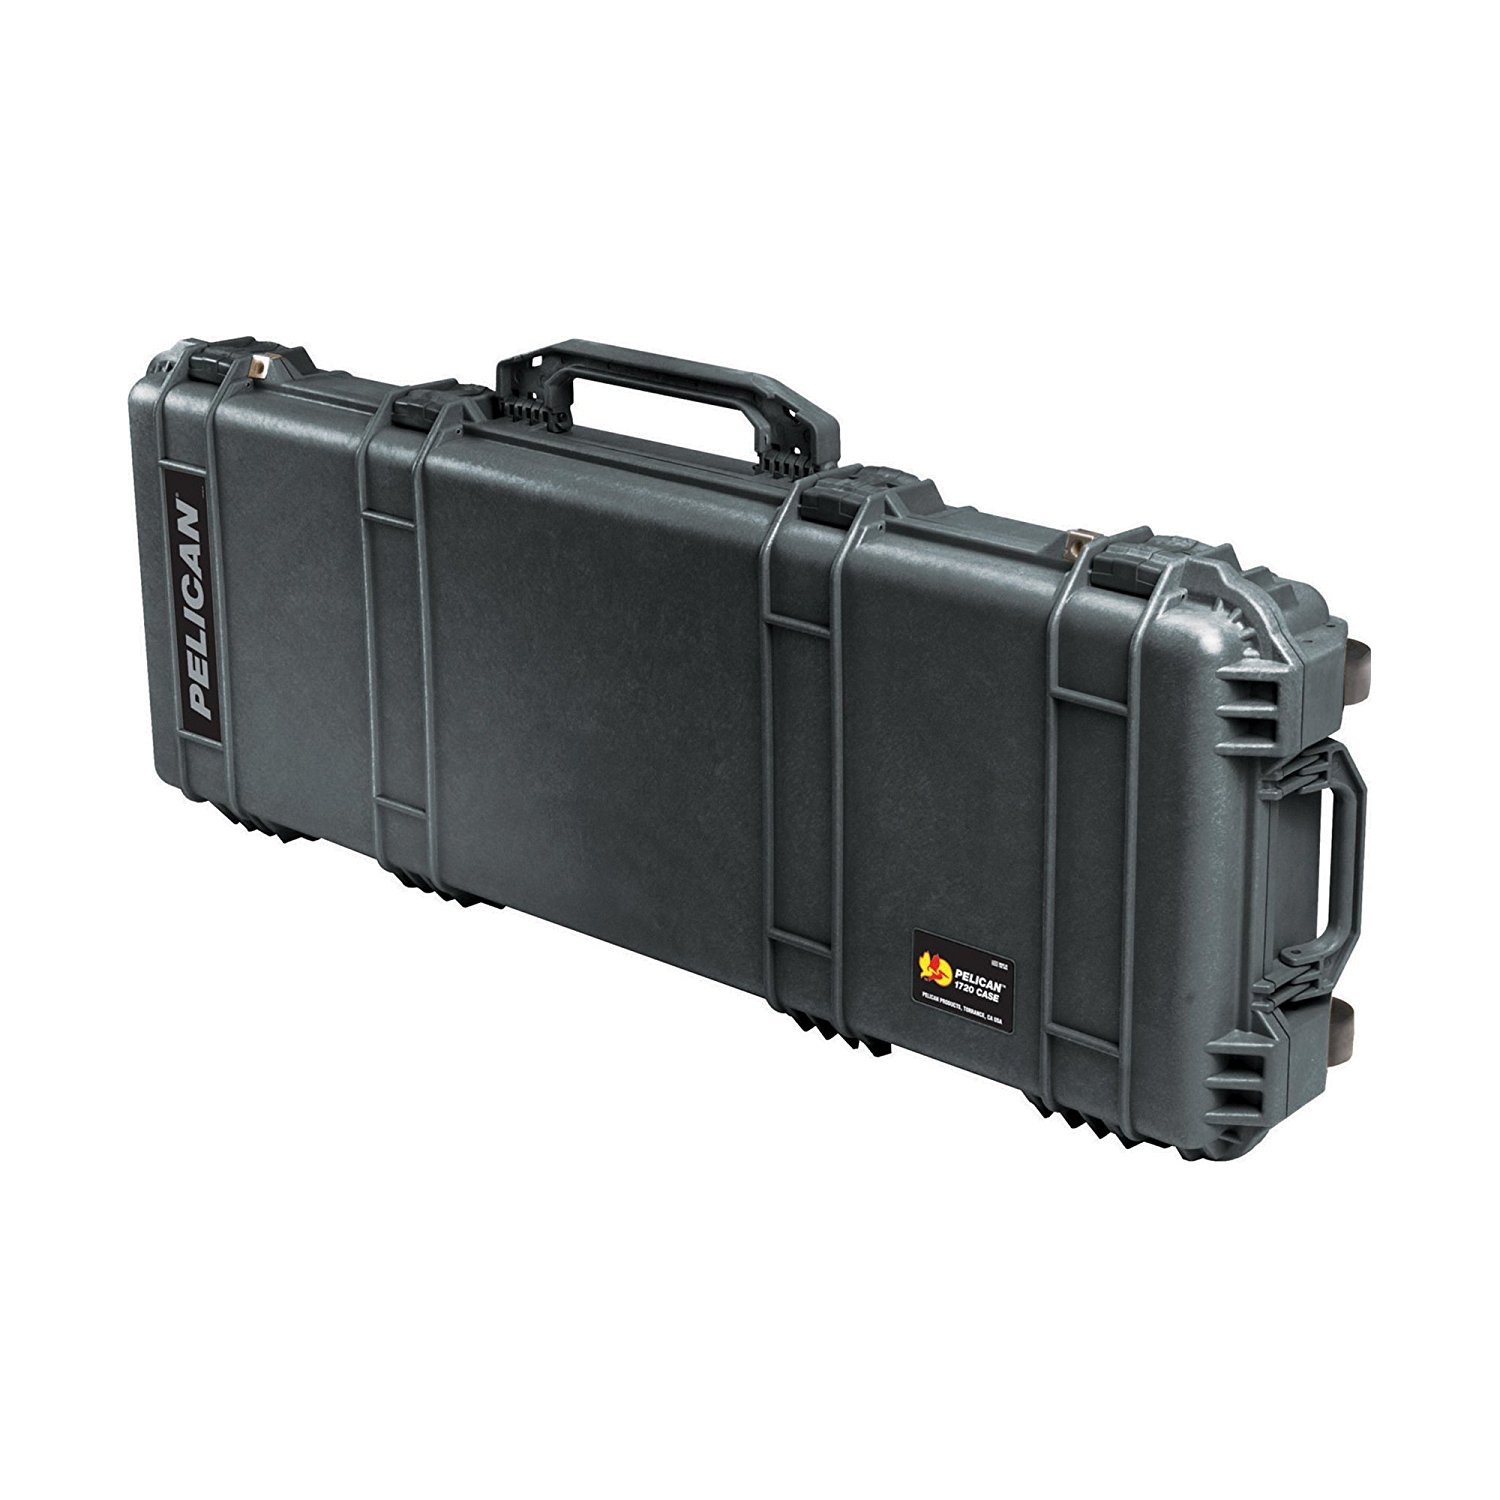 Pelican 1720 Wheeled Rifle Case